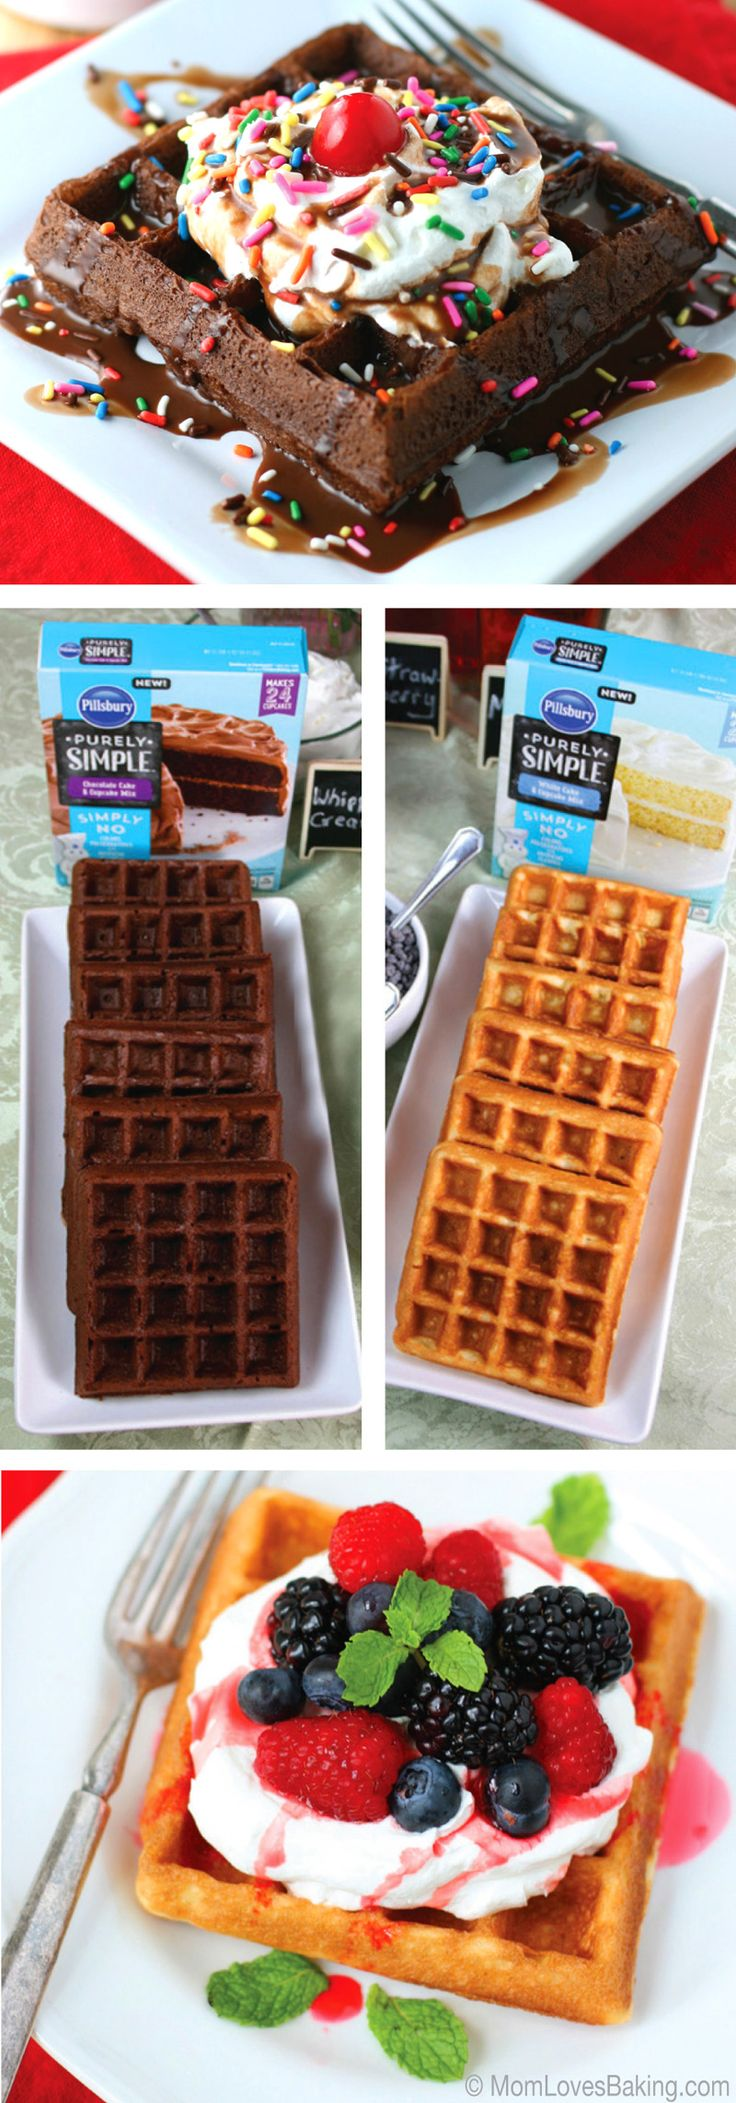 "Did you know that you can make AH-MAZING waffles using cake mix? I used the NEW Pillsbury Purely Simple Chocolate Cake Mix to make these ""hot fudge sundae"" Cake Mix Waffles! {Plus Party Planning Tips!}"